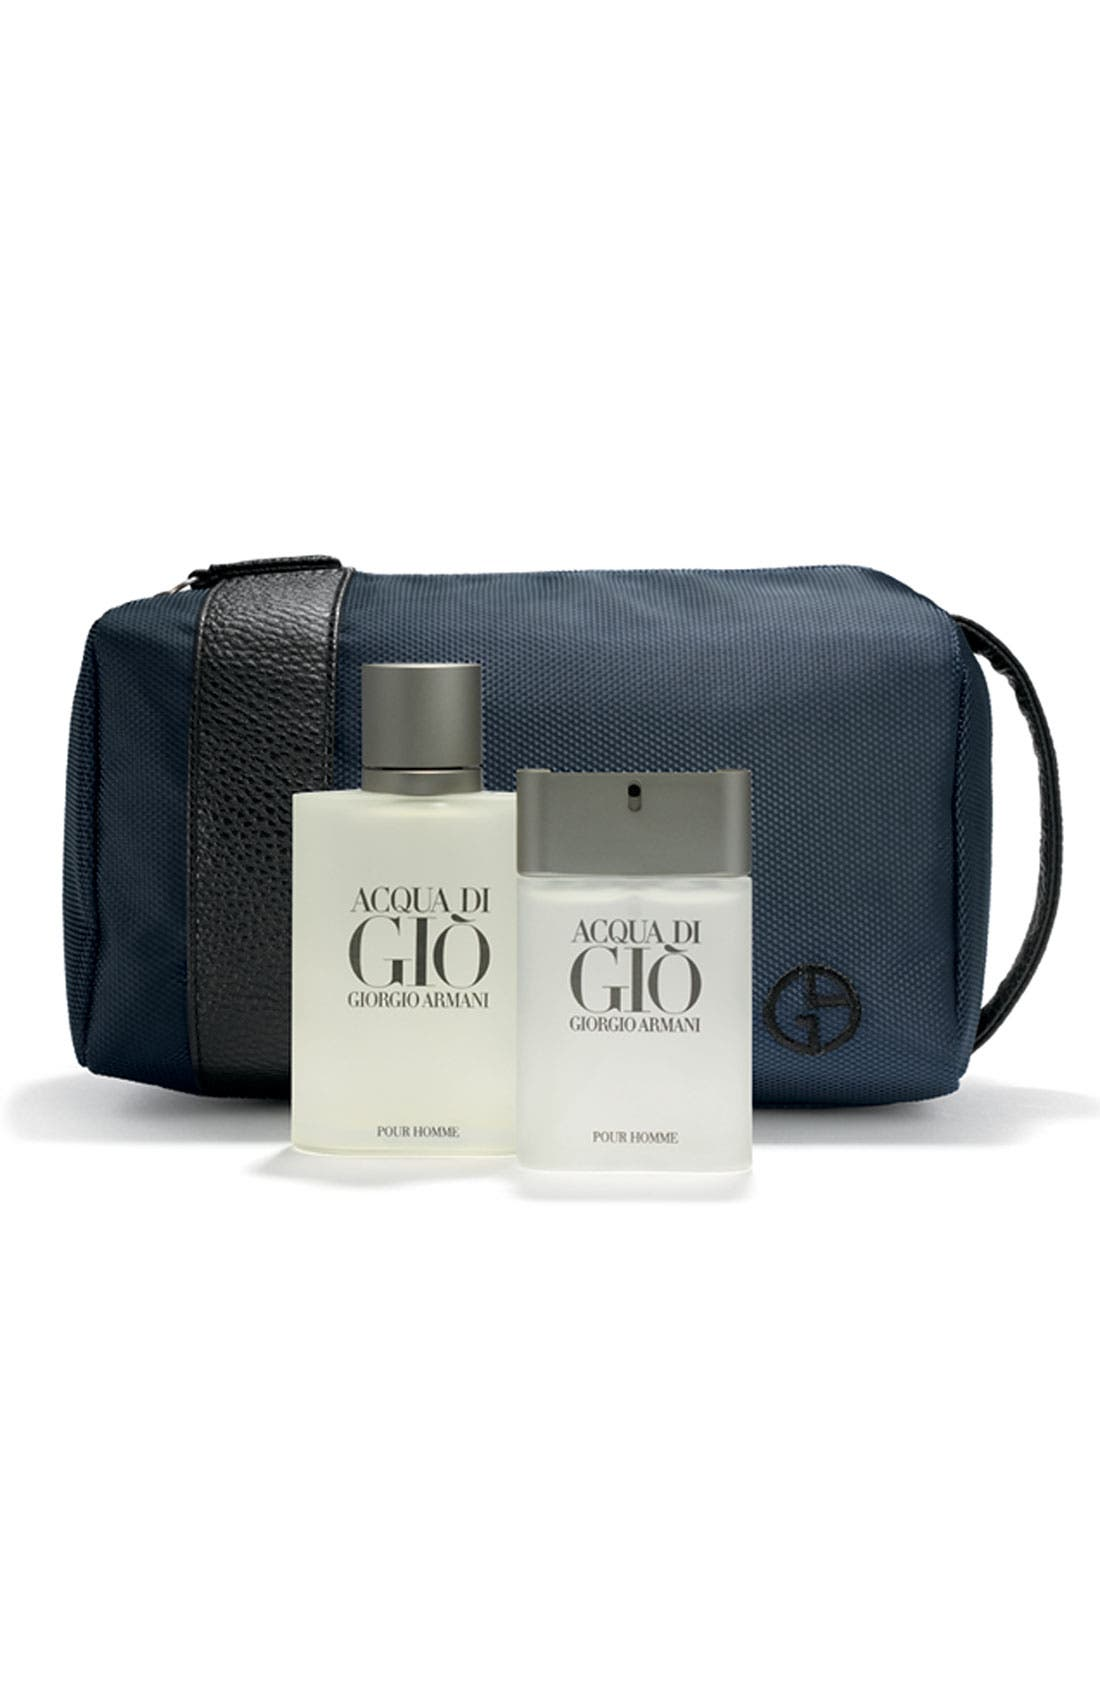 Acqua di Giò pour Homme 'Travel with Style' Set,                             Main thumbnail 1, color,                             000